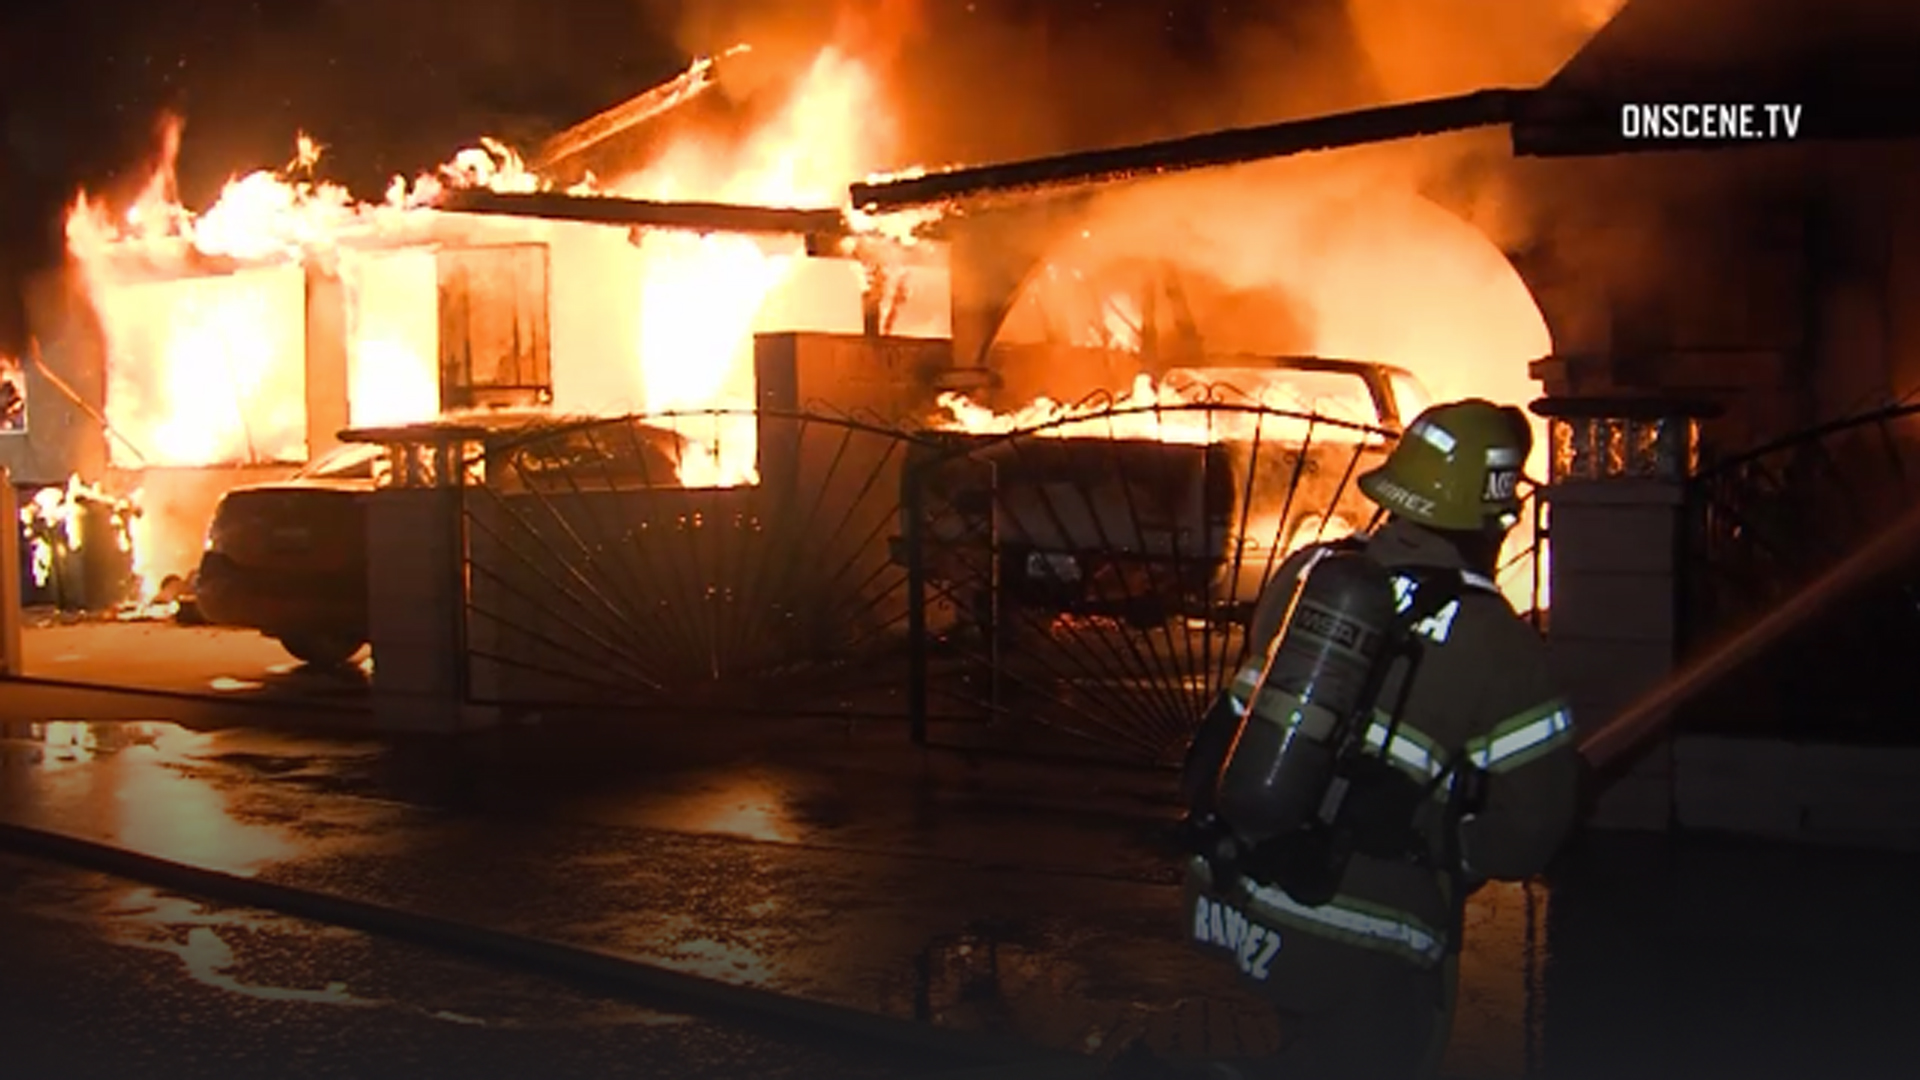 A home in Ventura is seen engulfed in flames during the early morning hours of Oct. 21, 2018. (Credit: Onscene.TV)